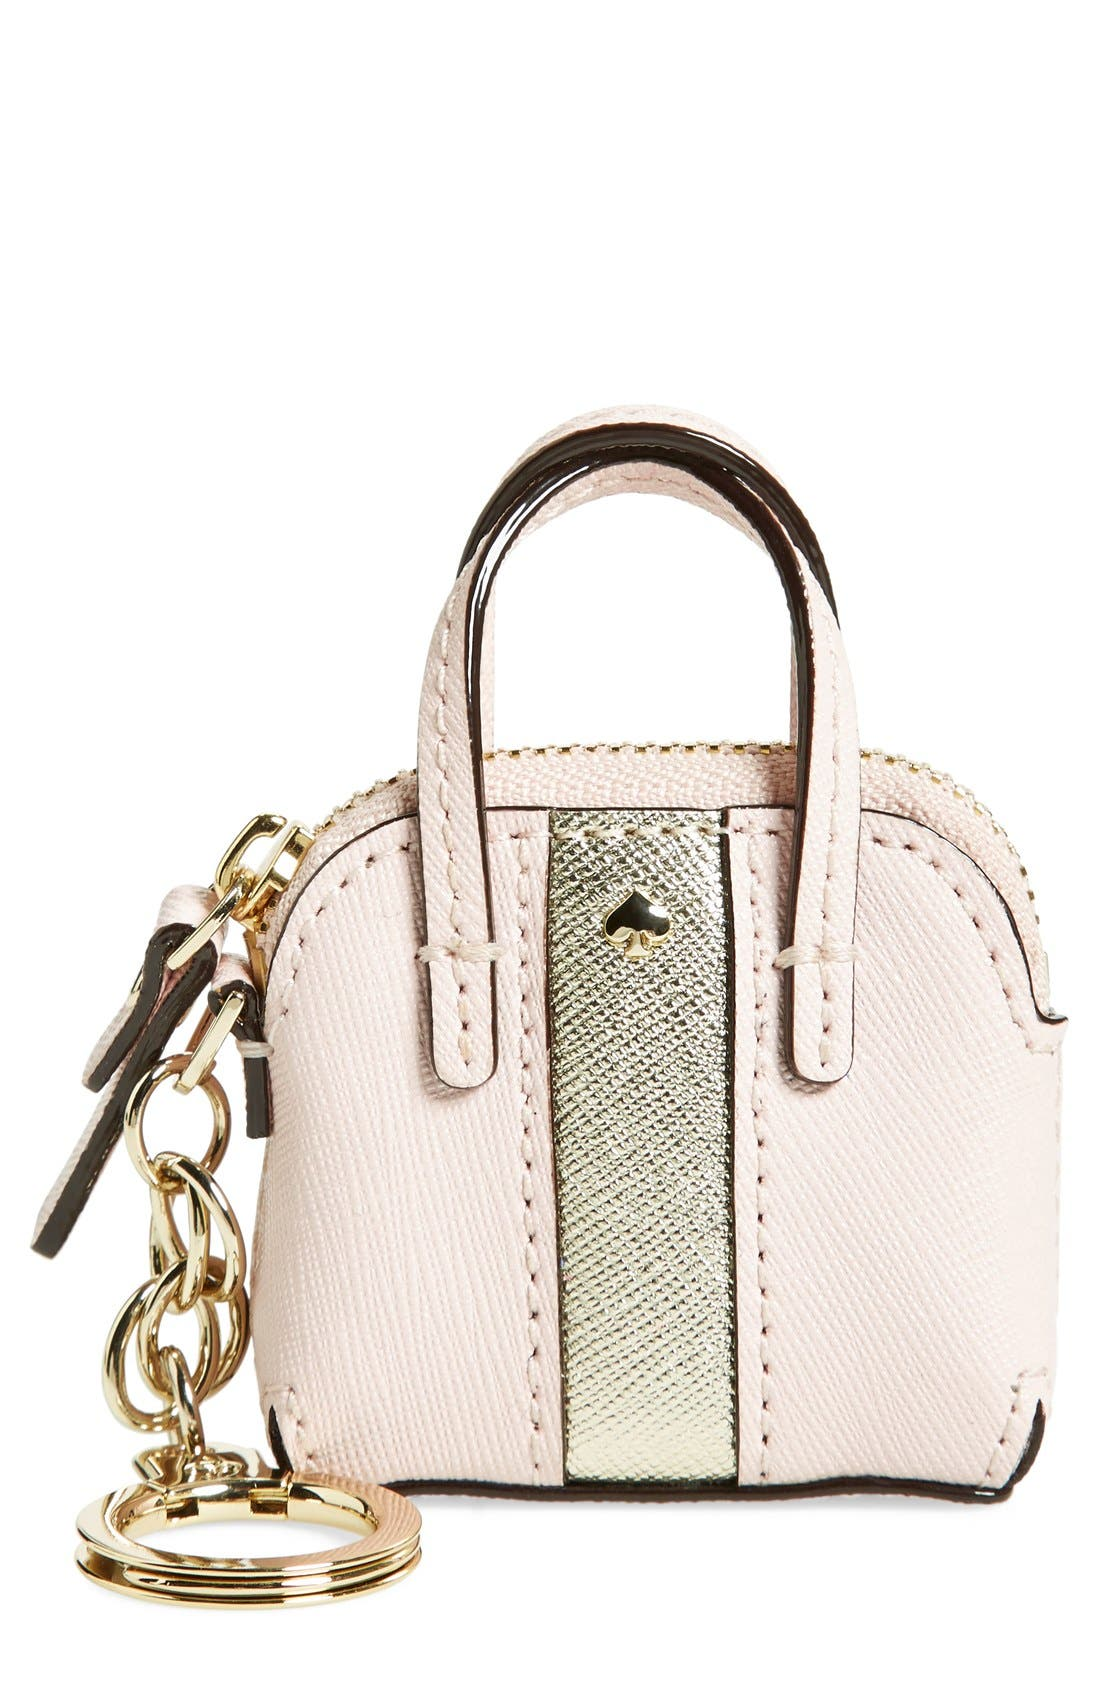 Main Image - kate spade new york 'racing stripe - maise' bag charm